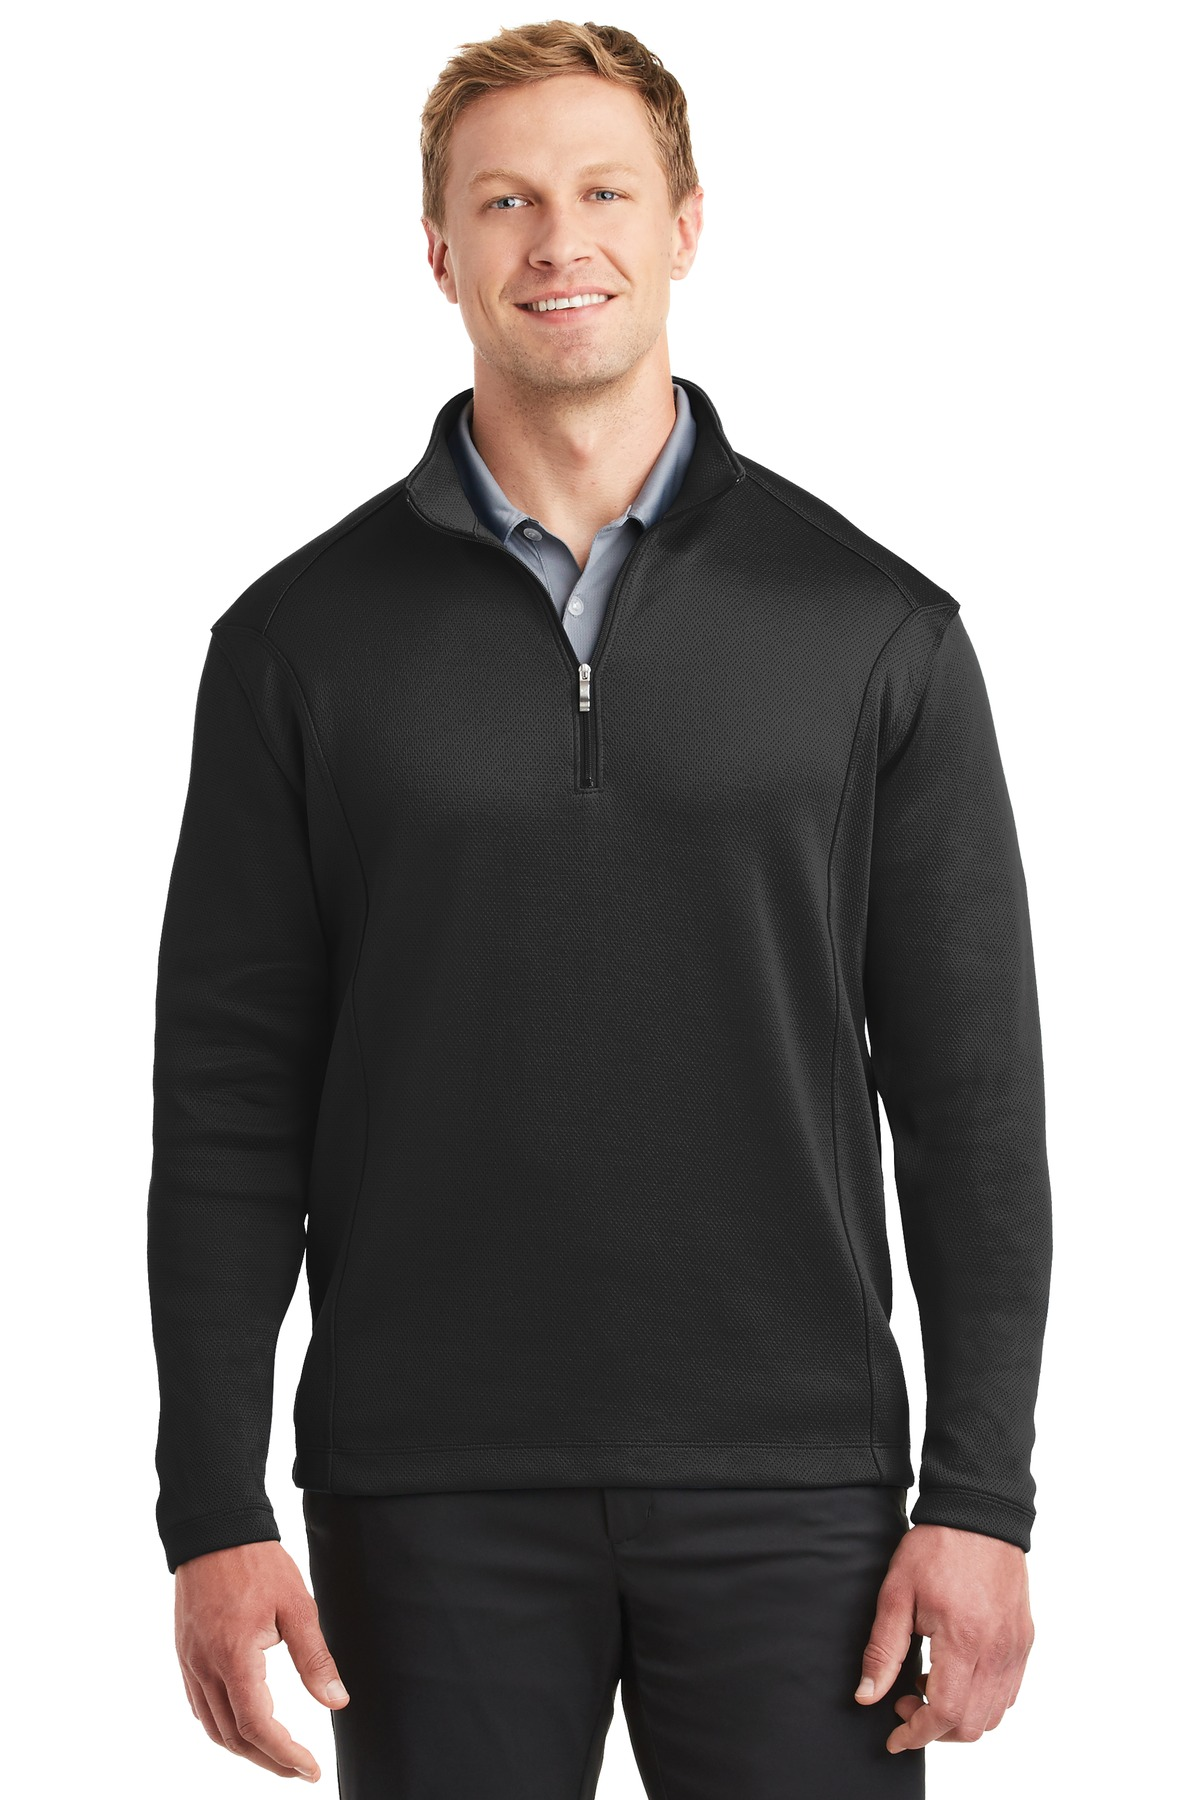 Nike Sport Cover-Up. 400099 - Black